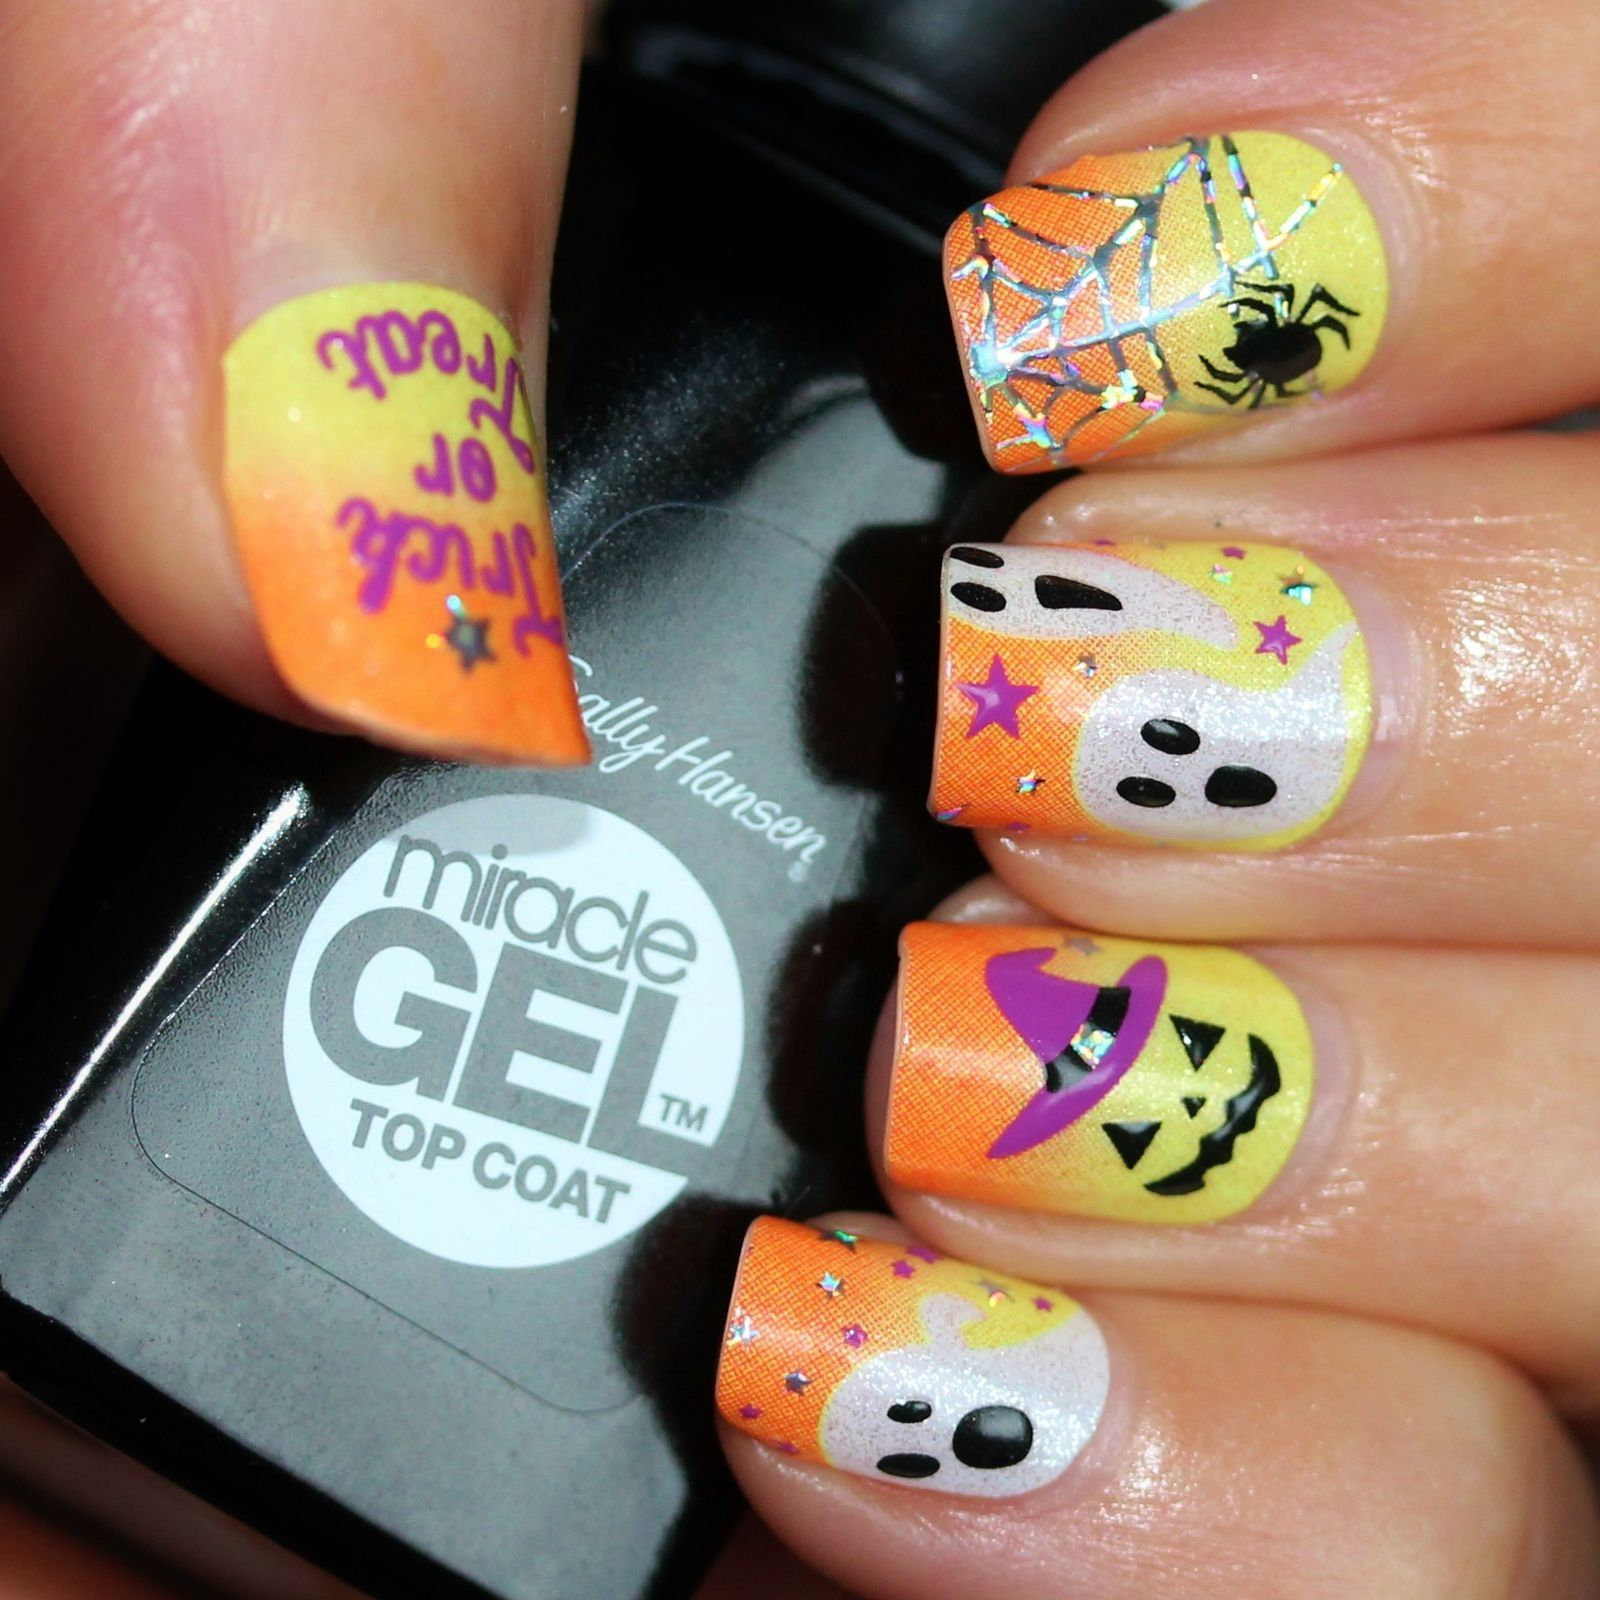 Sally Hansen Complete Care 4-in-1 Extra Moisturizing Nail Treatment / Kiss Nail Dress Halloween HKDS15 / Sally Hansen Miracle Gel Top Coat